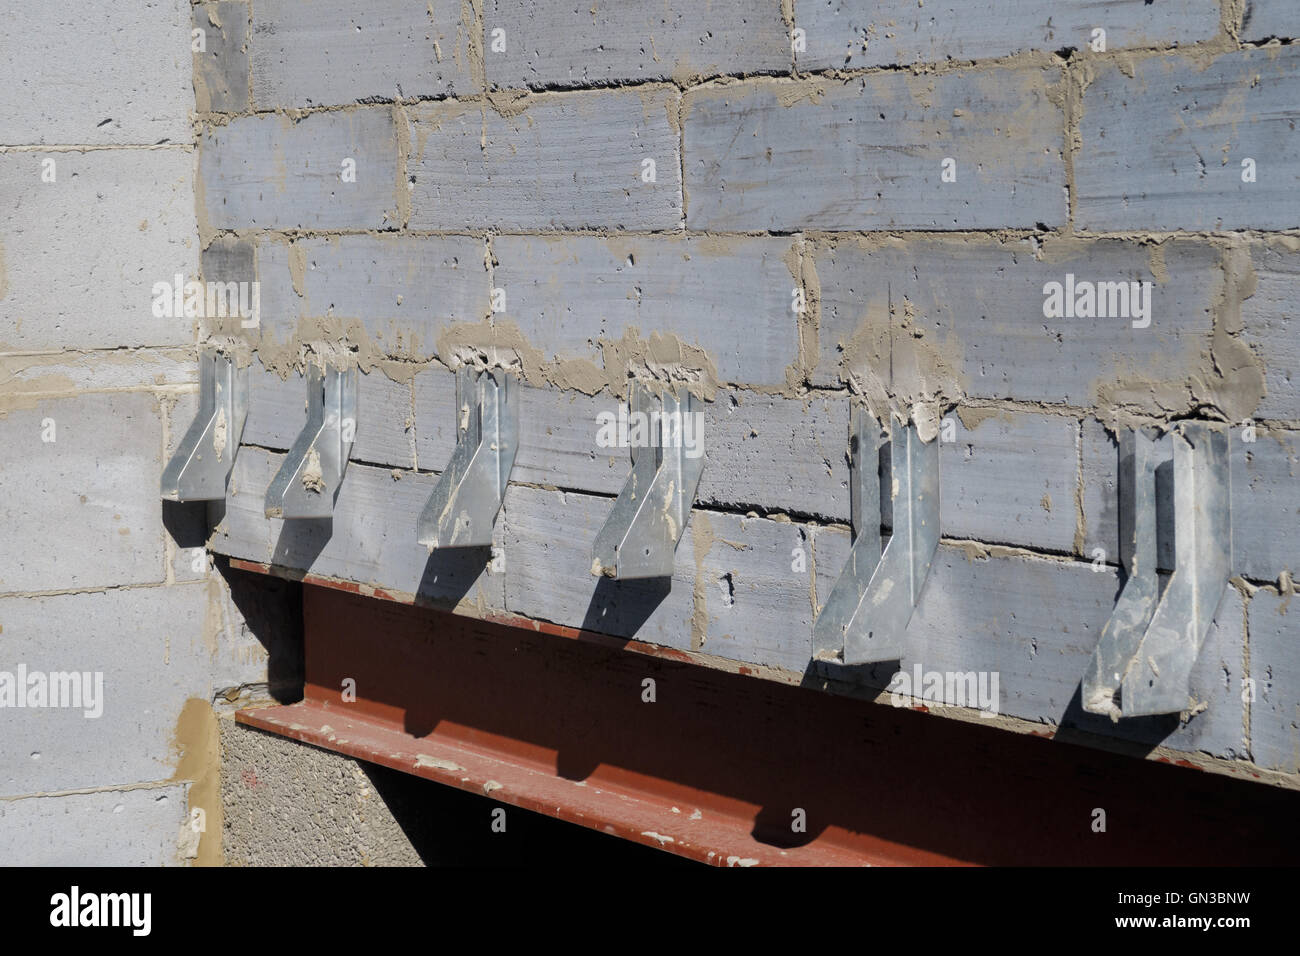 Galvanised joist hangers within interior of house build in progress. - Stock Image